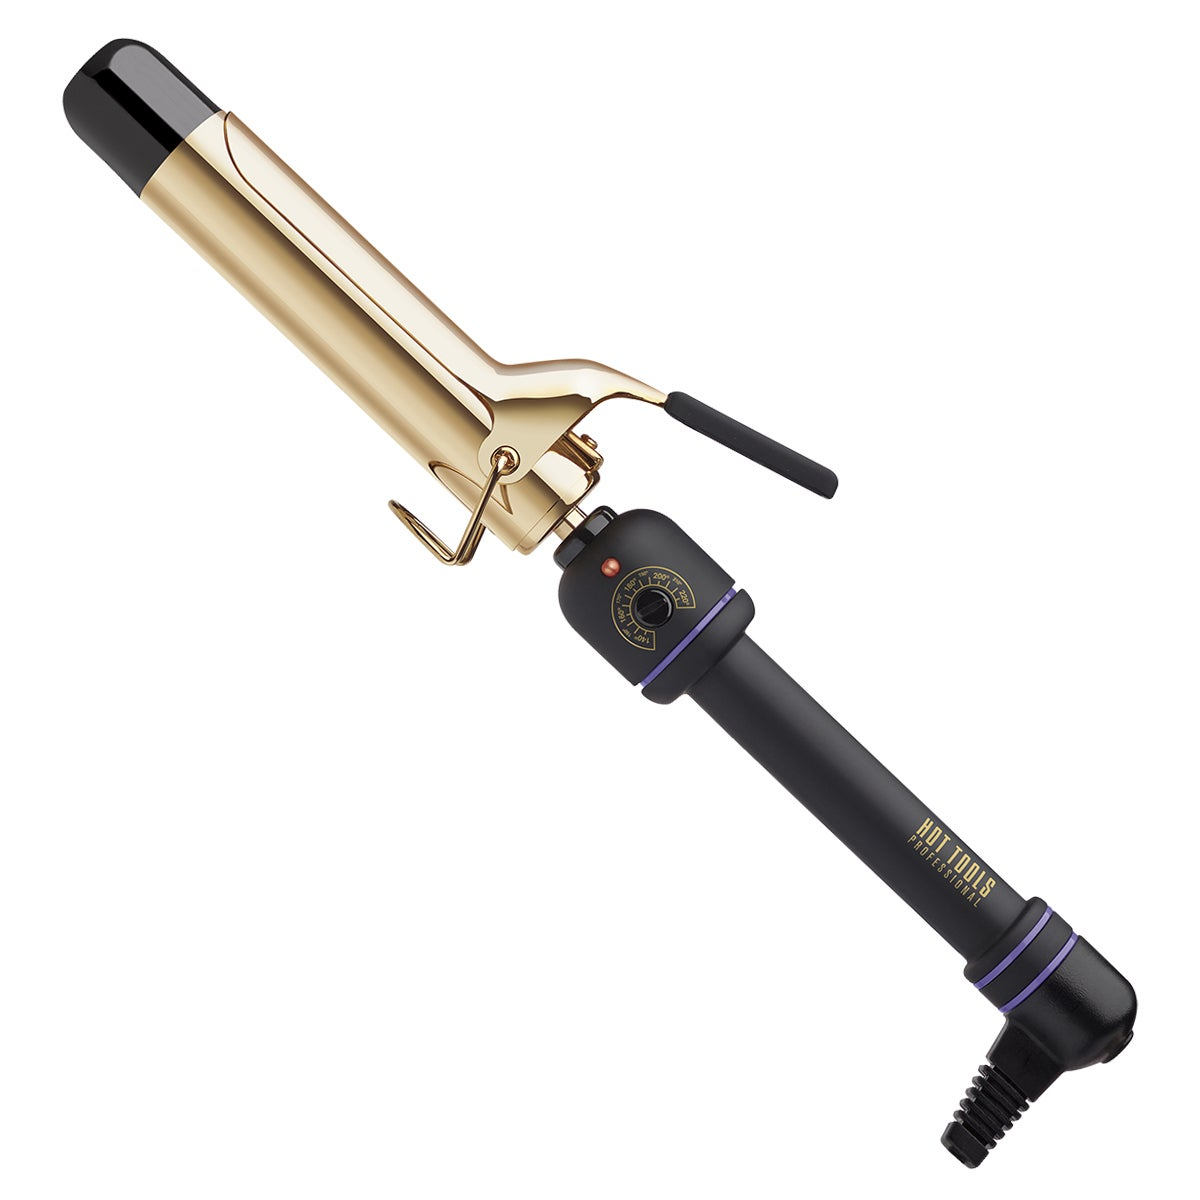 Hot Tools Professional Hot Tools 24K Gold Salon Curling Irons